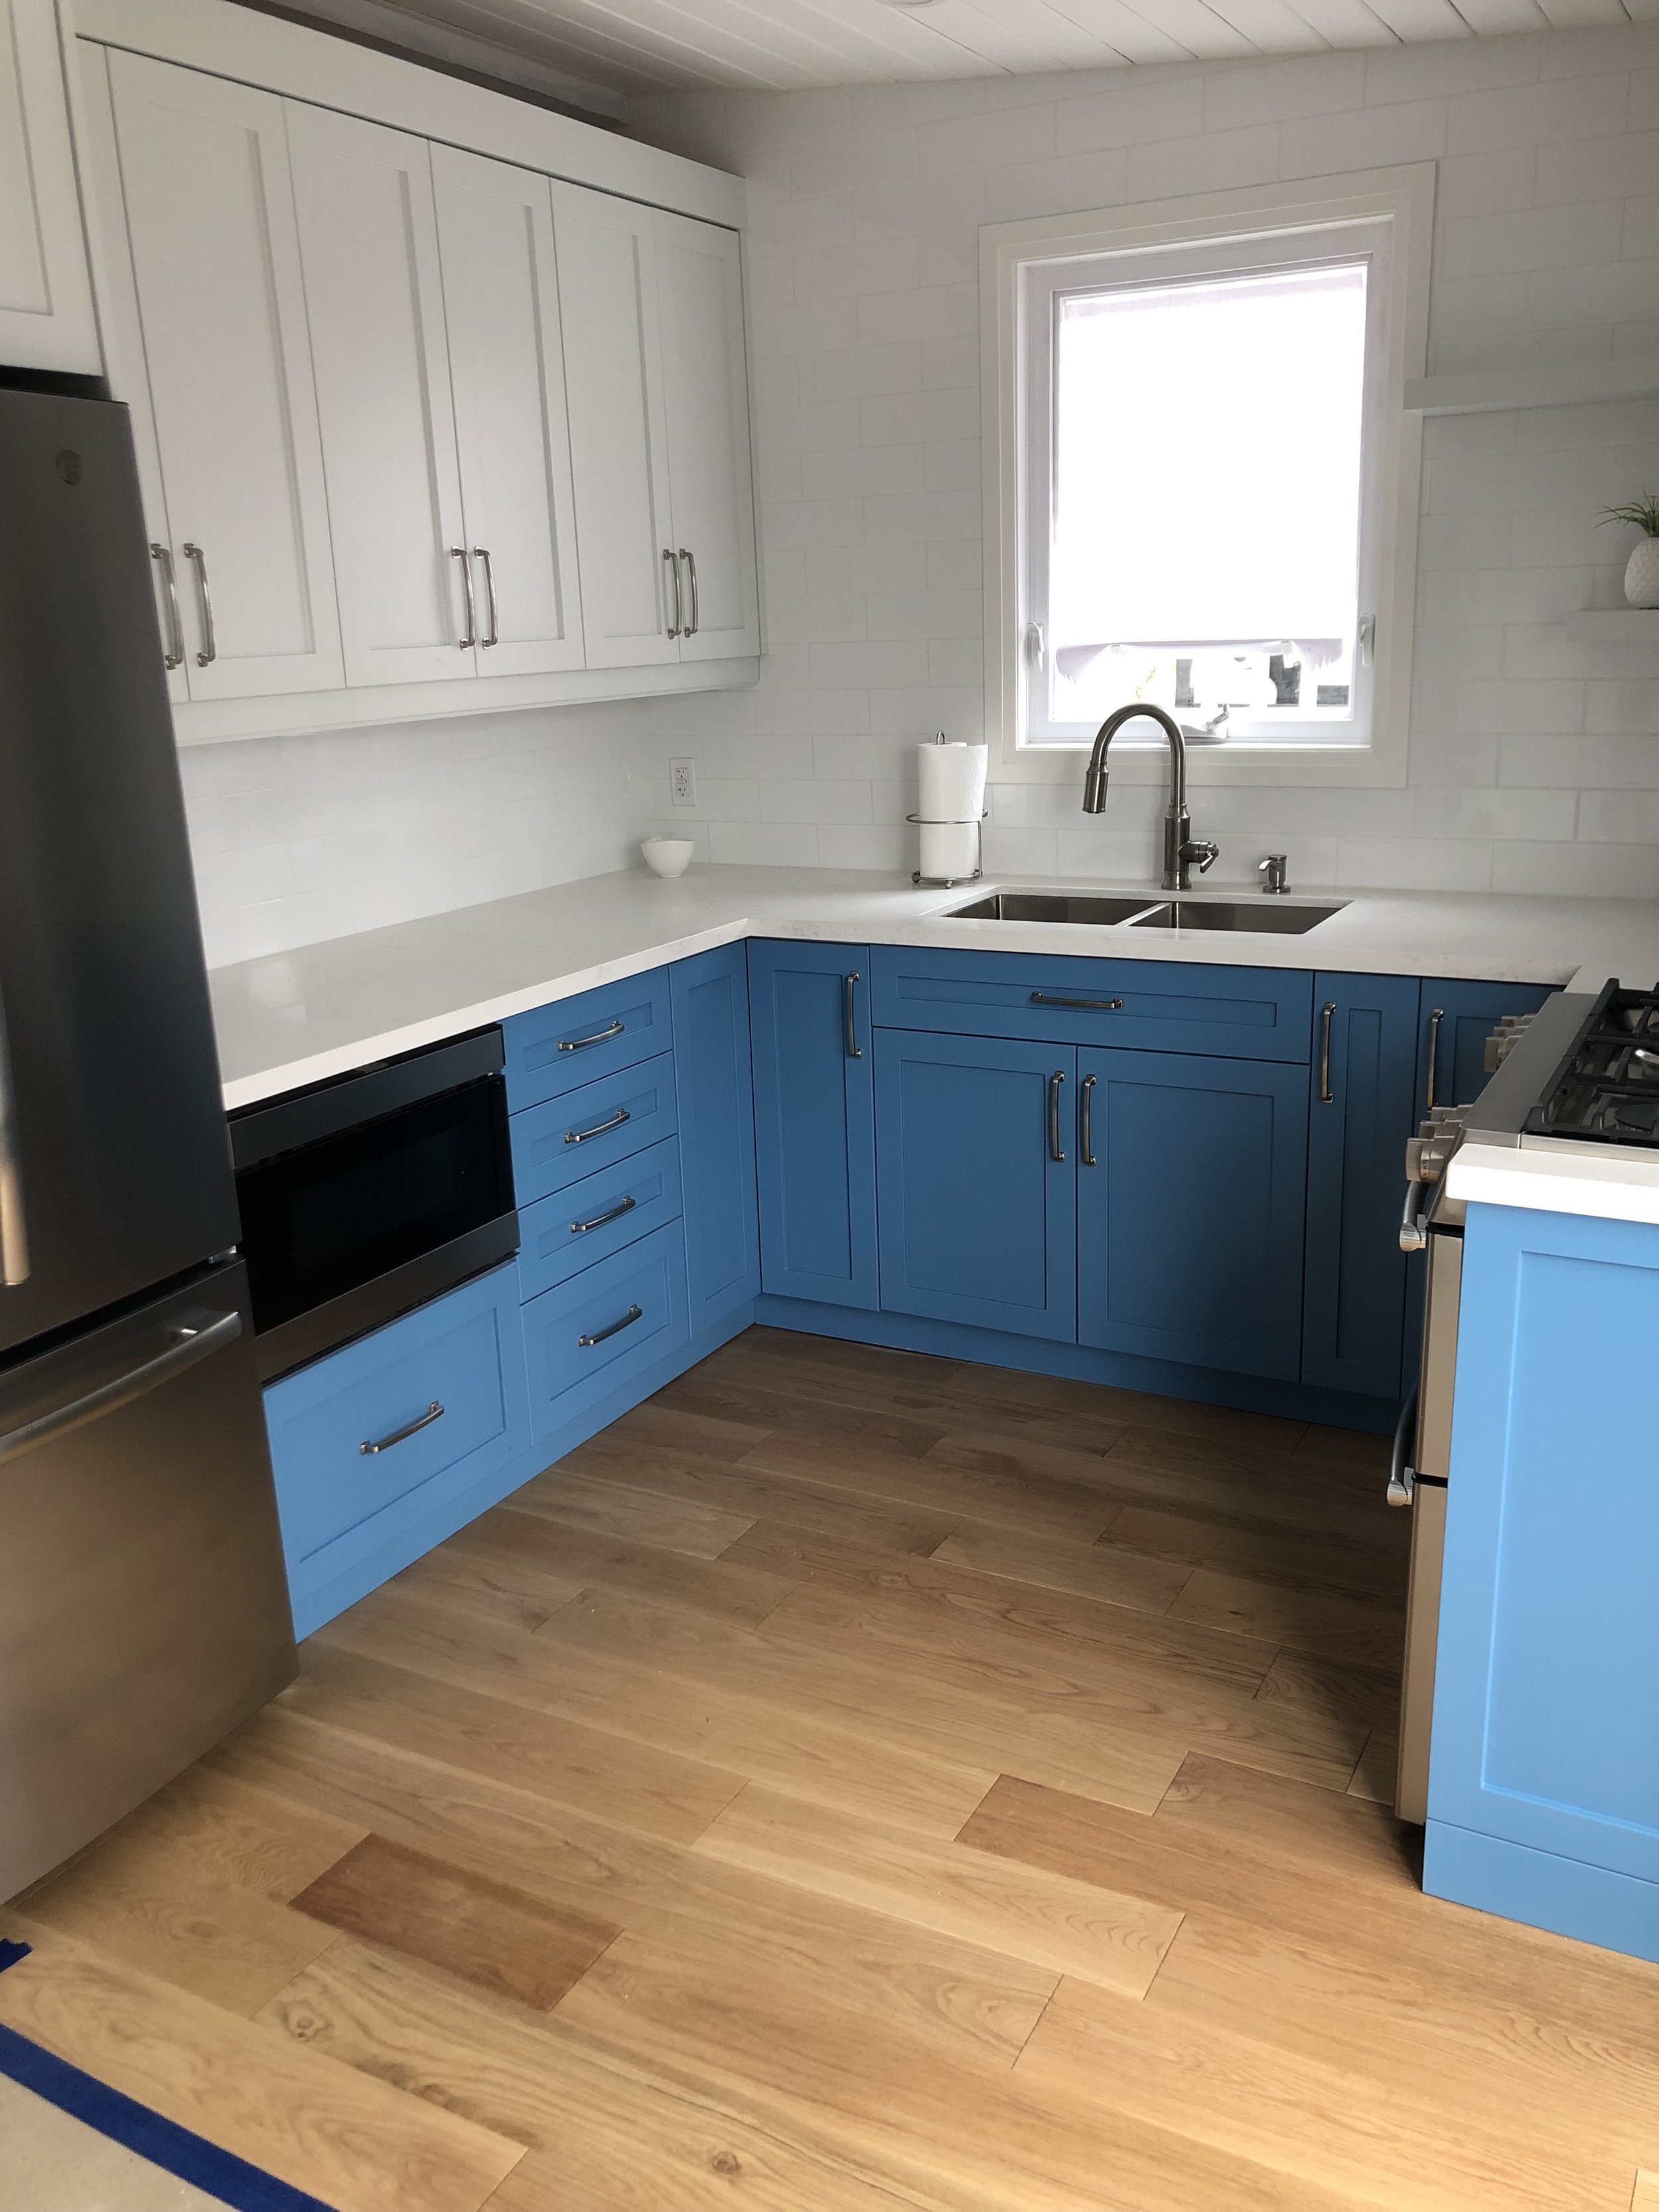 Dual Colour cabinetry with quartz counter, under mount sink, and new hardwood flooring.